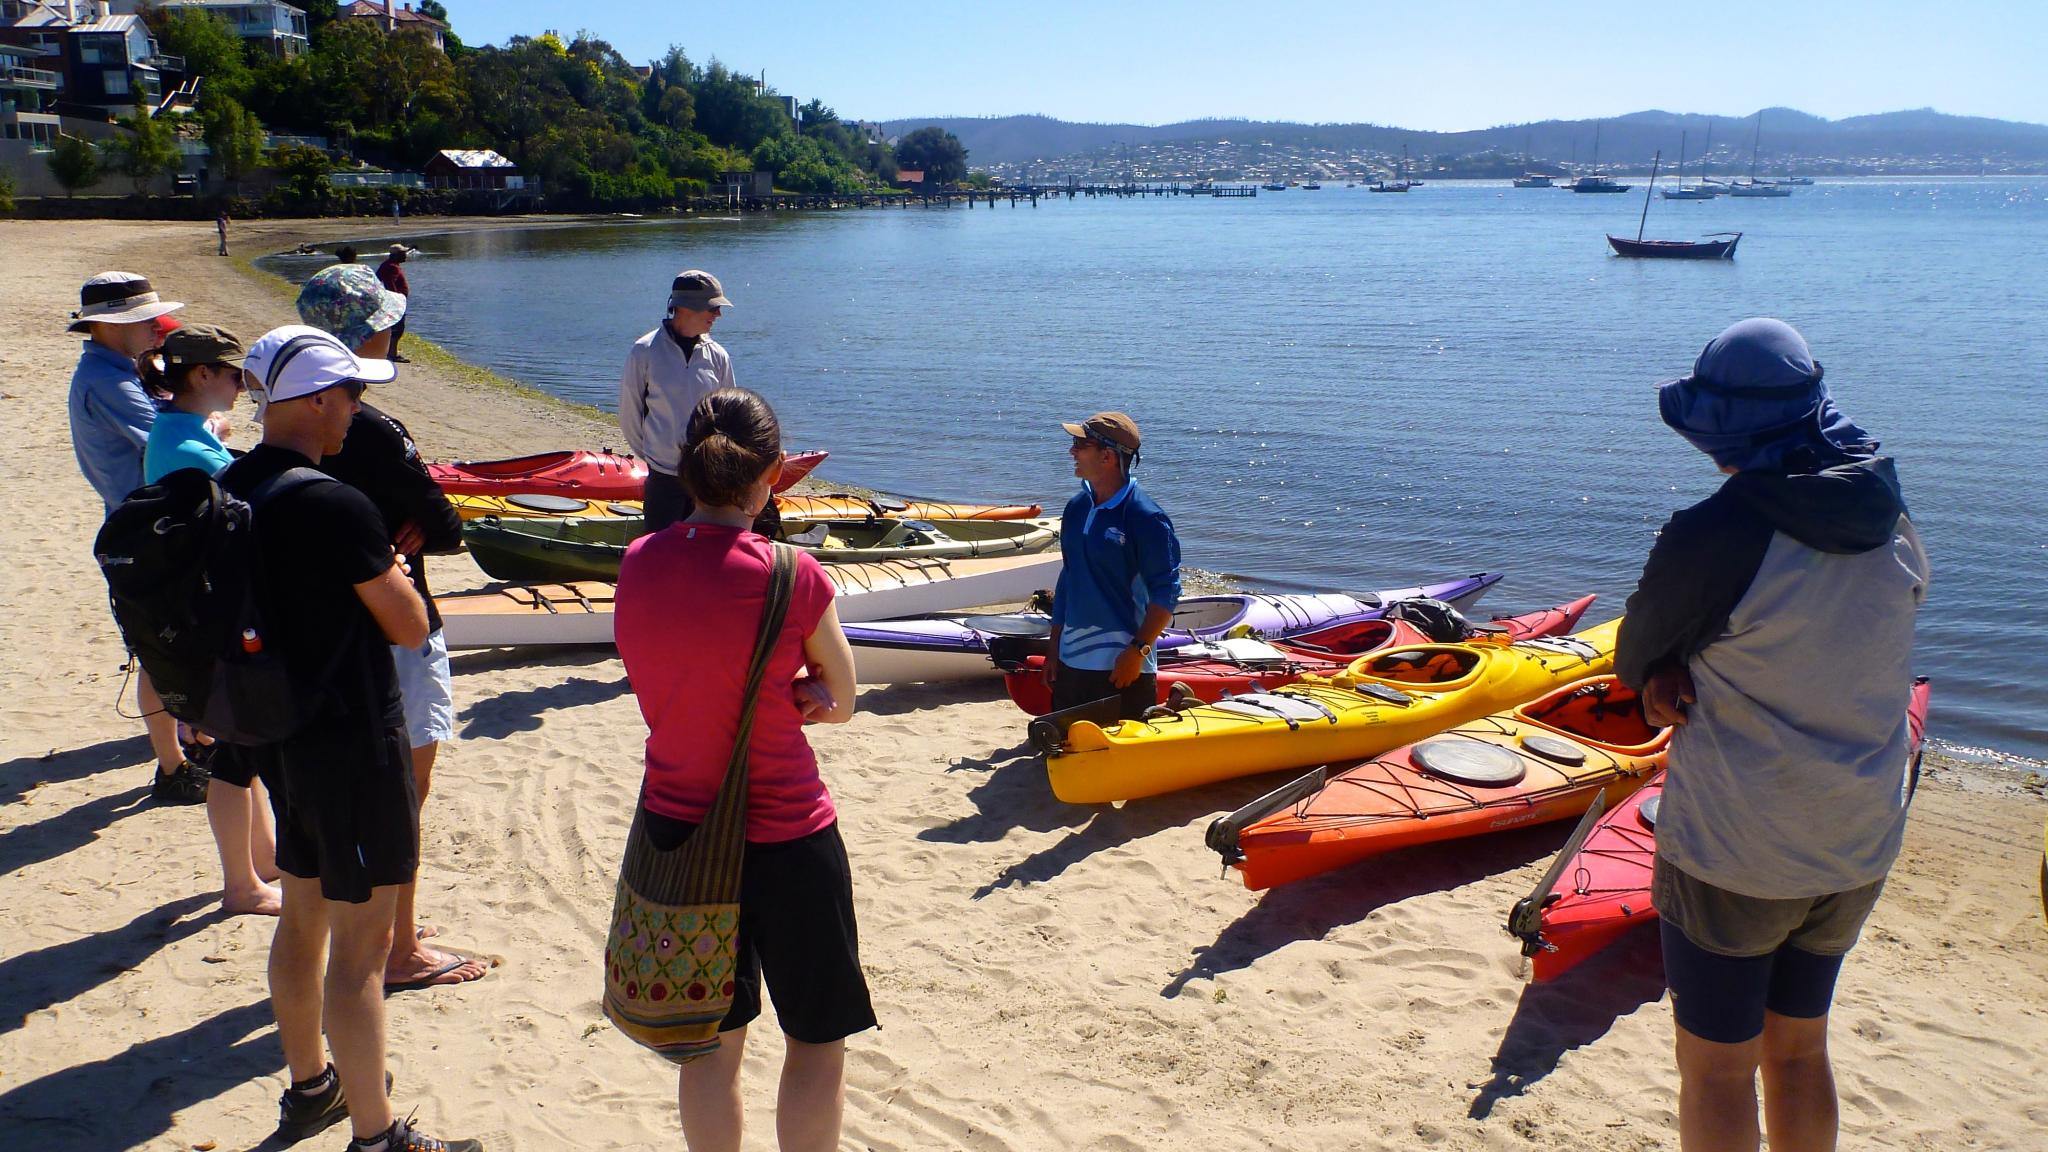 Roaring 40s Kayaking - Tasmania's most comprehensive sea kayaking instructional program